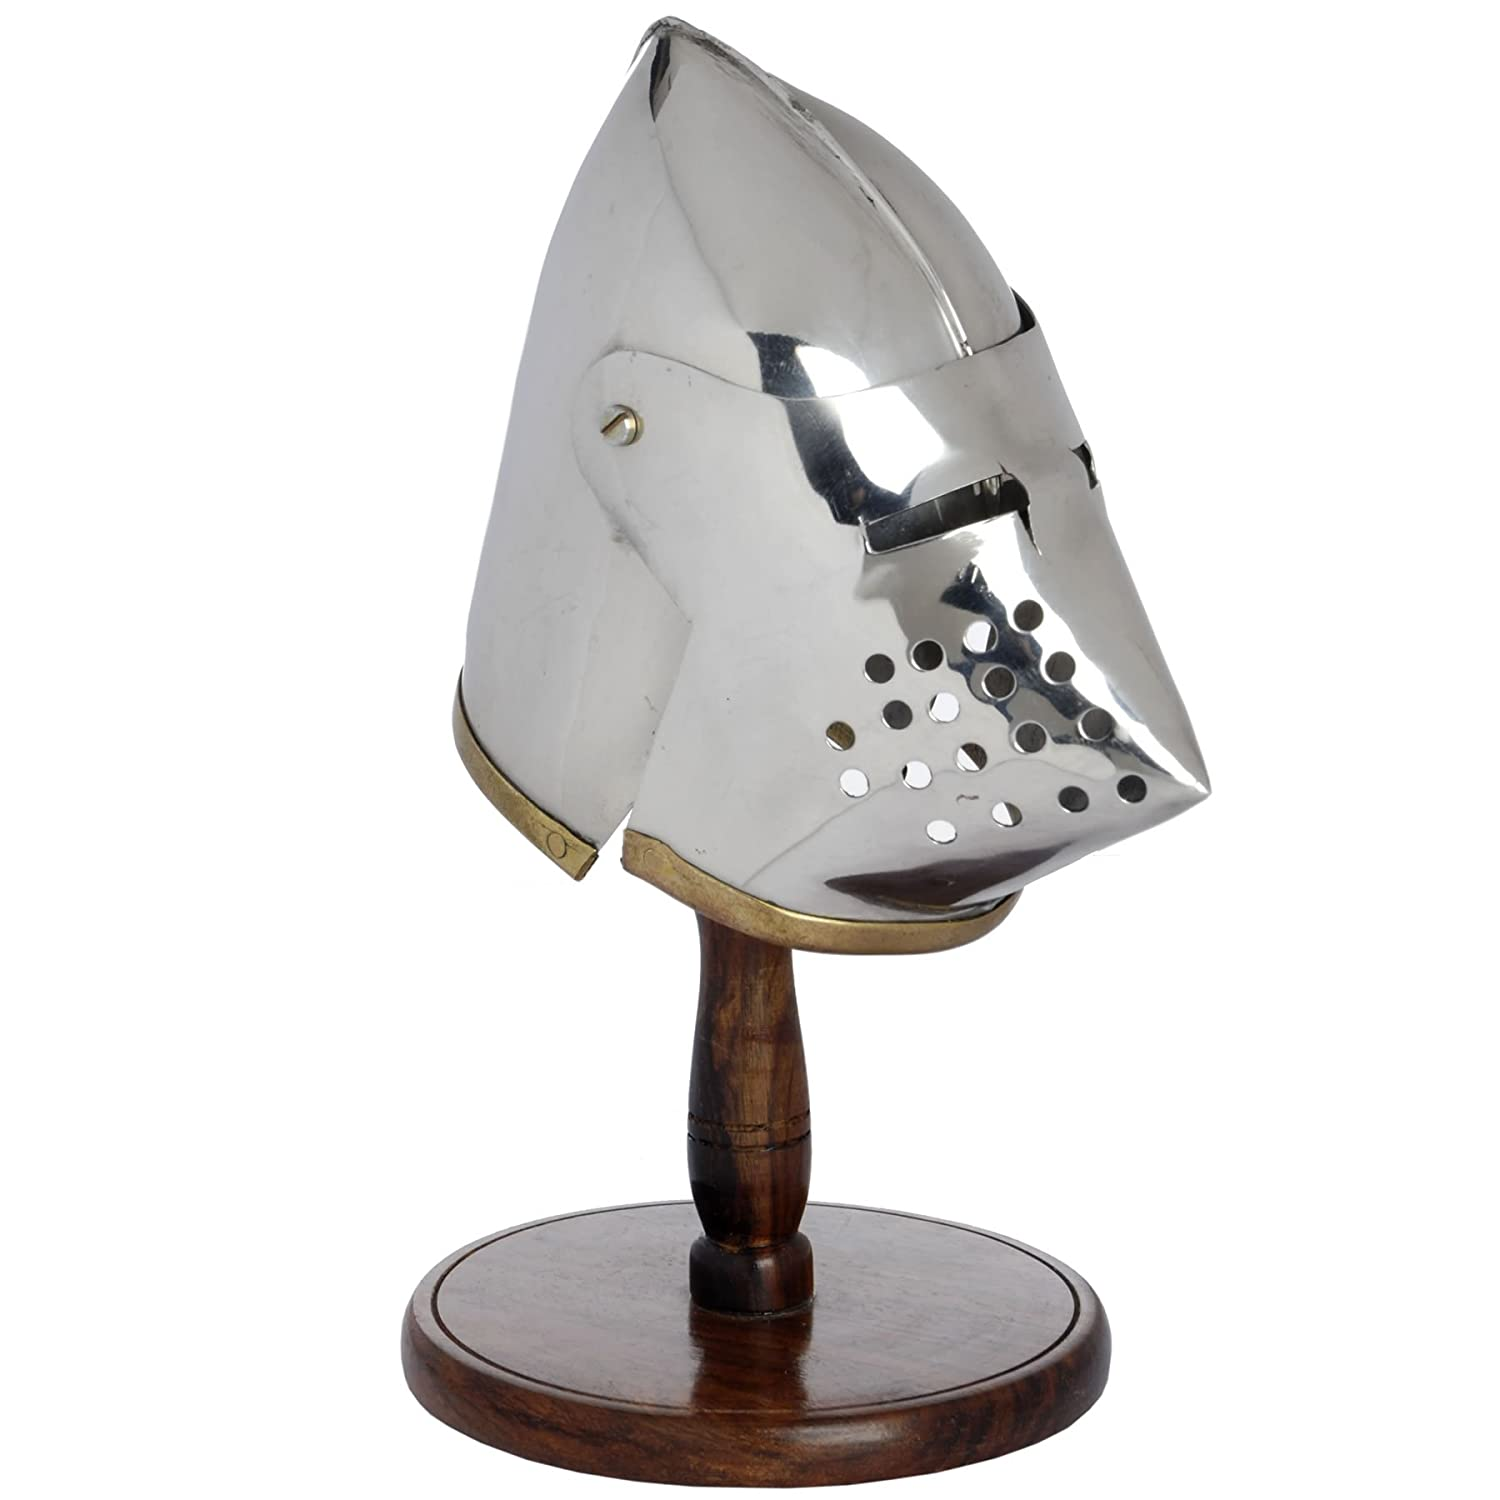 Hill Interiors Mini Pigface Helmet With Stand (One Size) (Silver) UTHI982_1